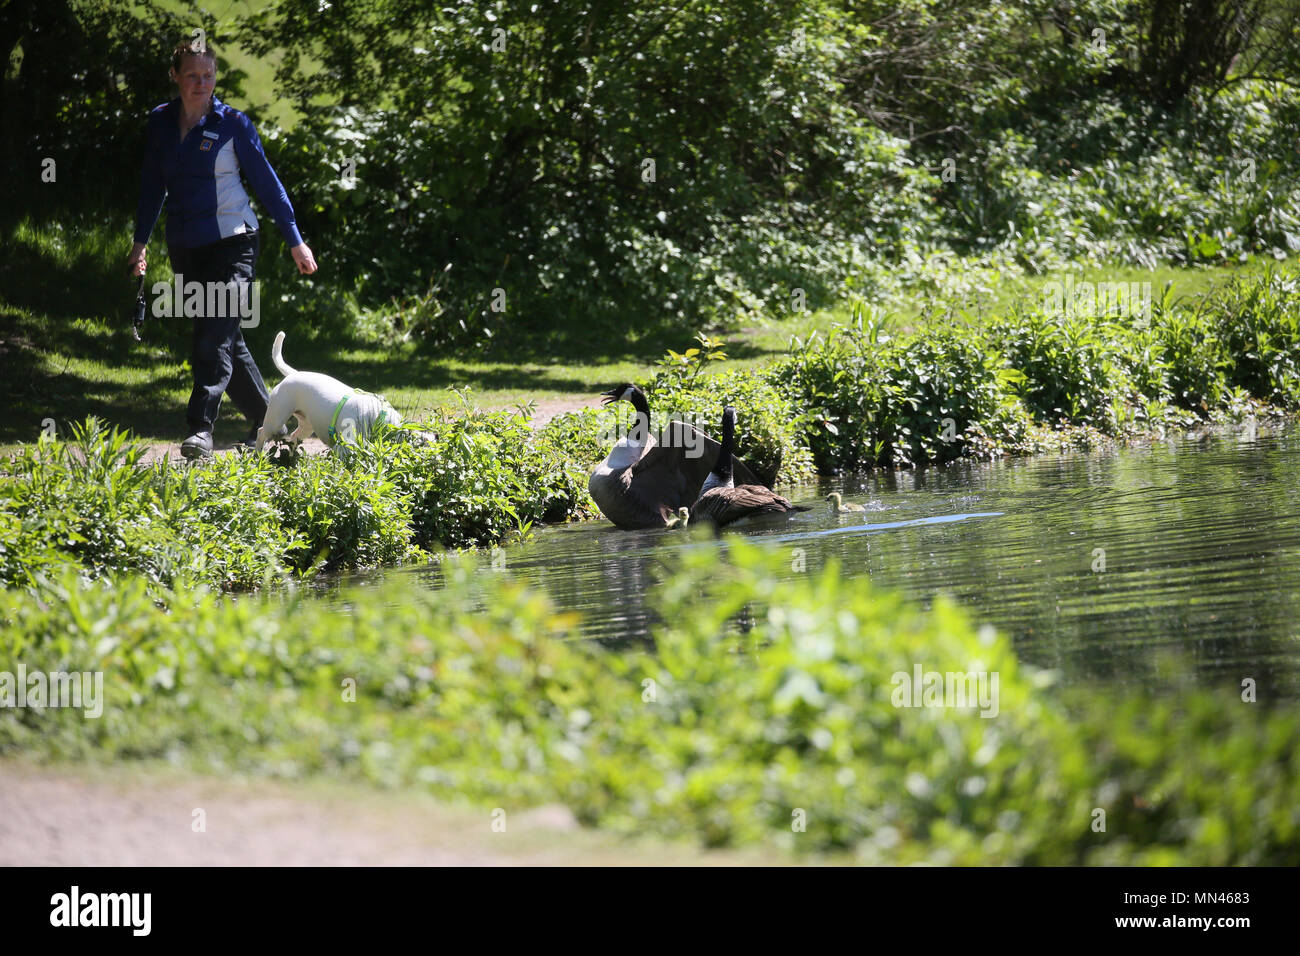 Queens Park, Heywood, UK. 14th May 2018. Canadian Geese protecting their young from an inquisitive Staffordshire Bull Terrier in Queens Park, Heywood,14th May, 2018 (C)Barbara Cook/Alamy Live News - Stock Image